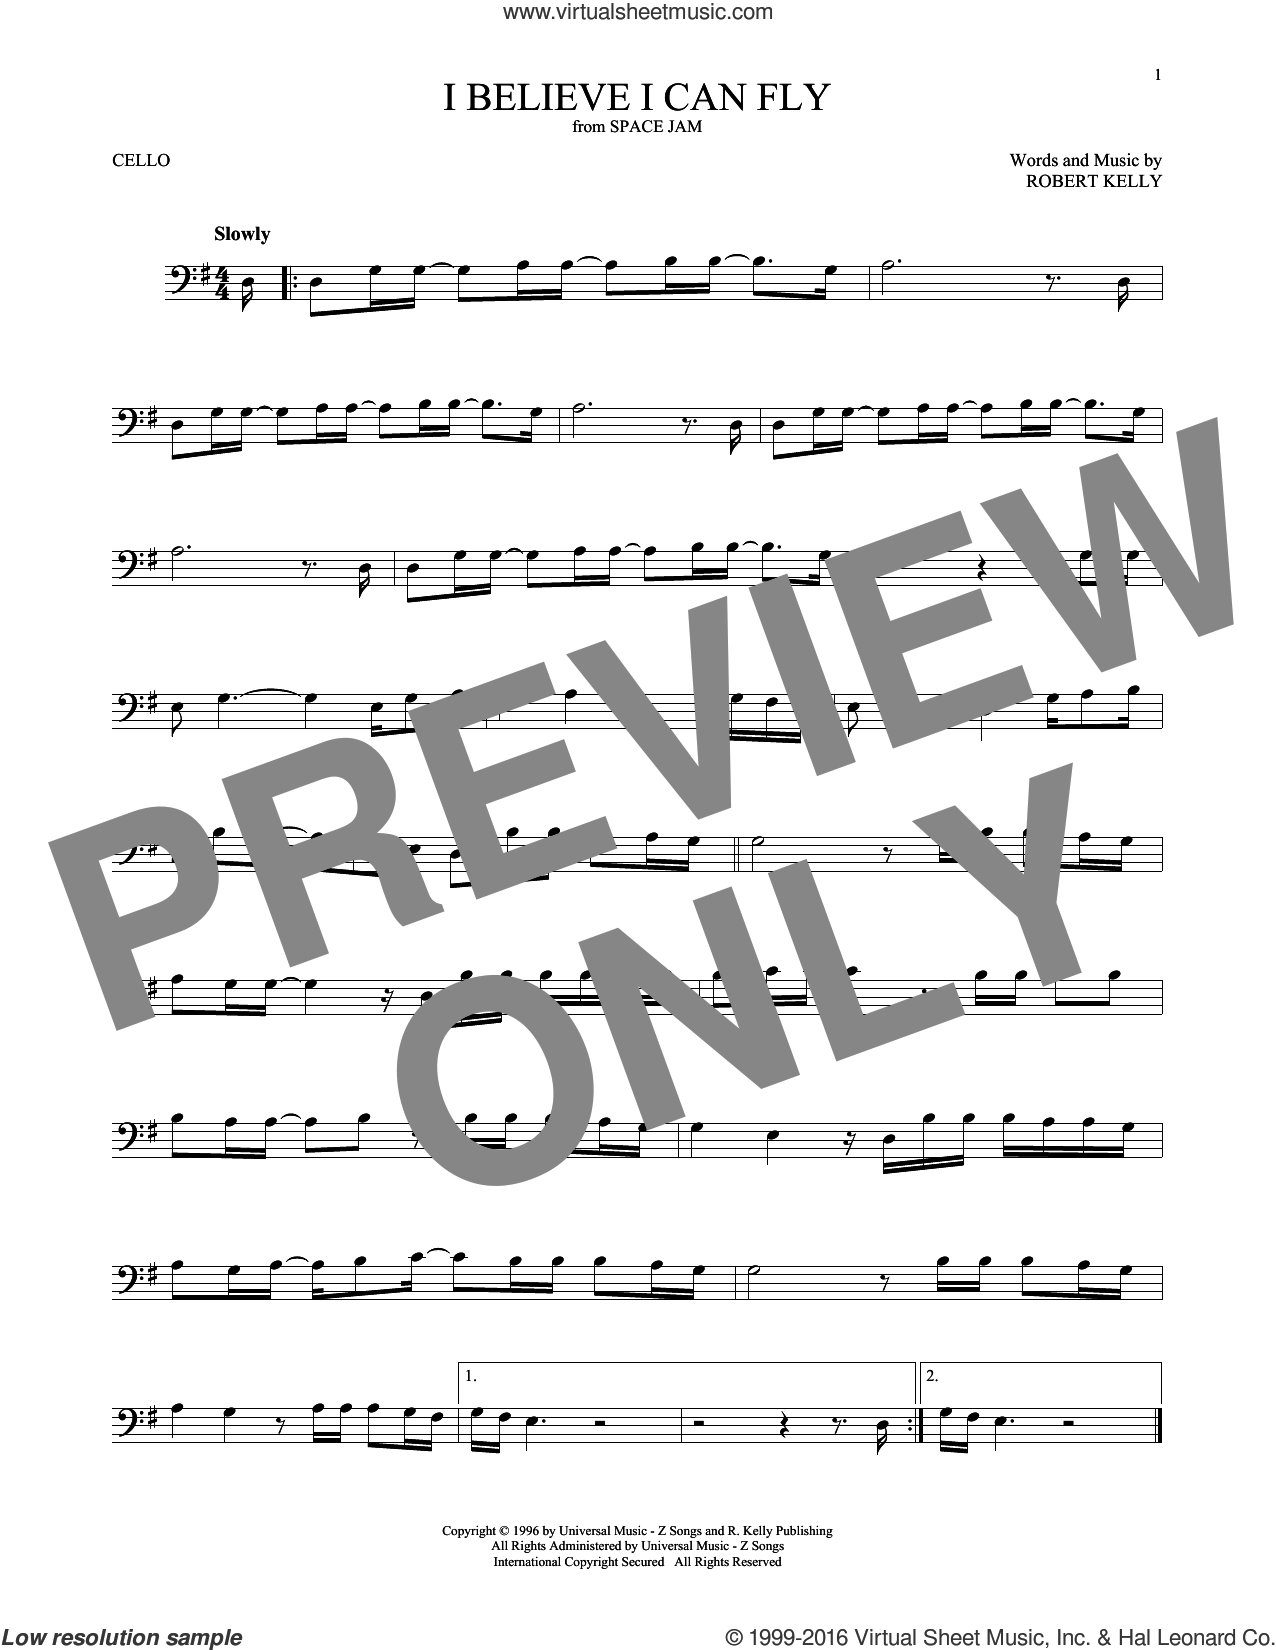 I Believe I Can Fly sheet music for cello solo by Robert Kelly